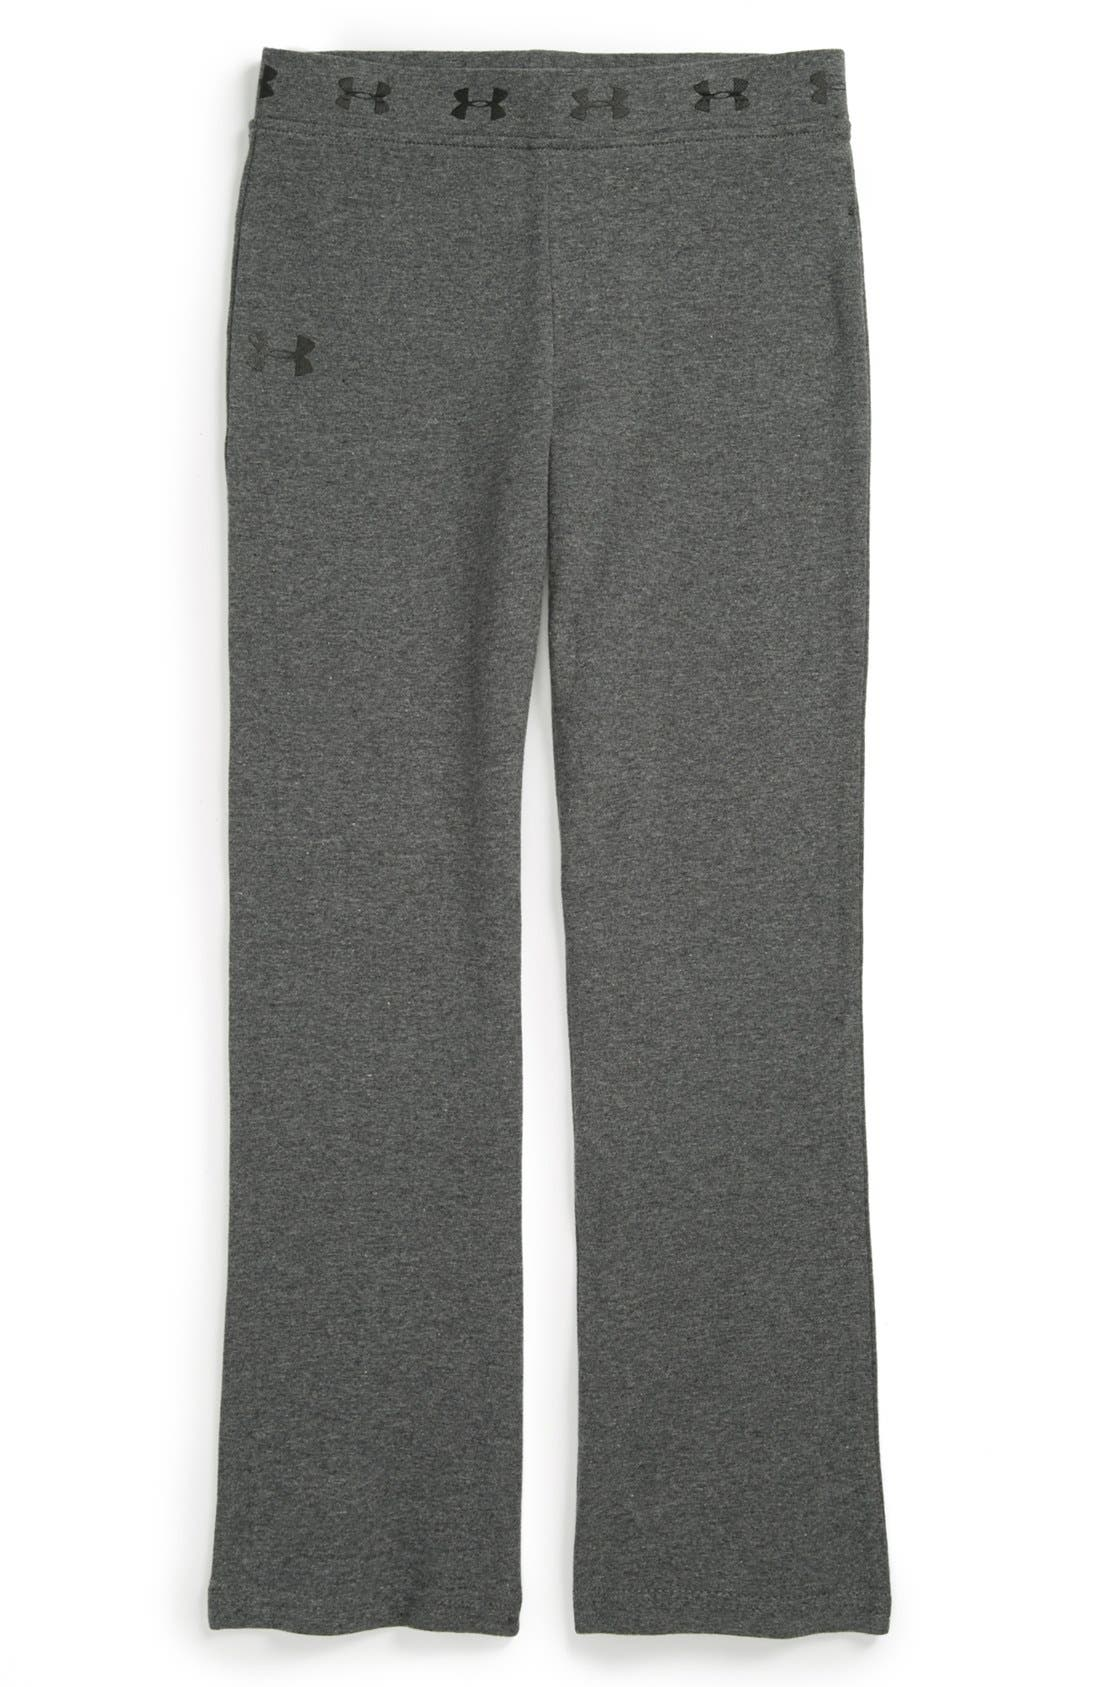 Main Image - Under Armour 'Logo' Yoga Pants (Little Girls)